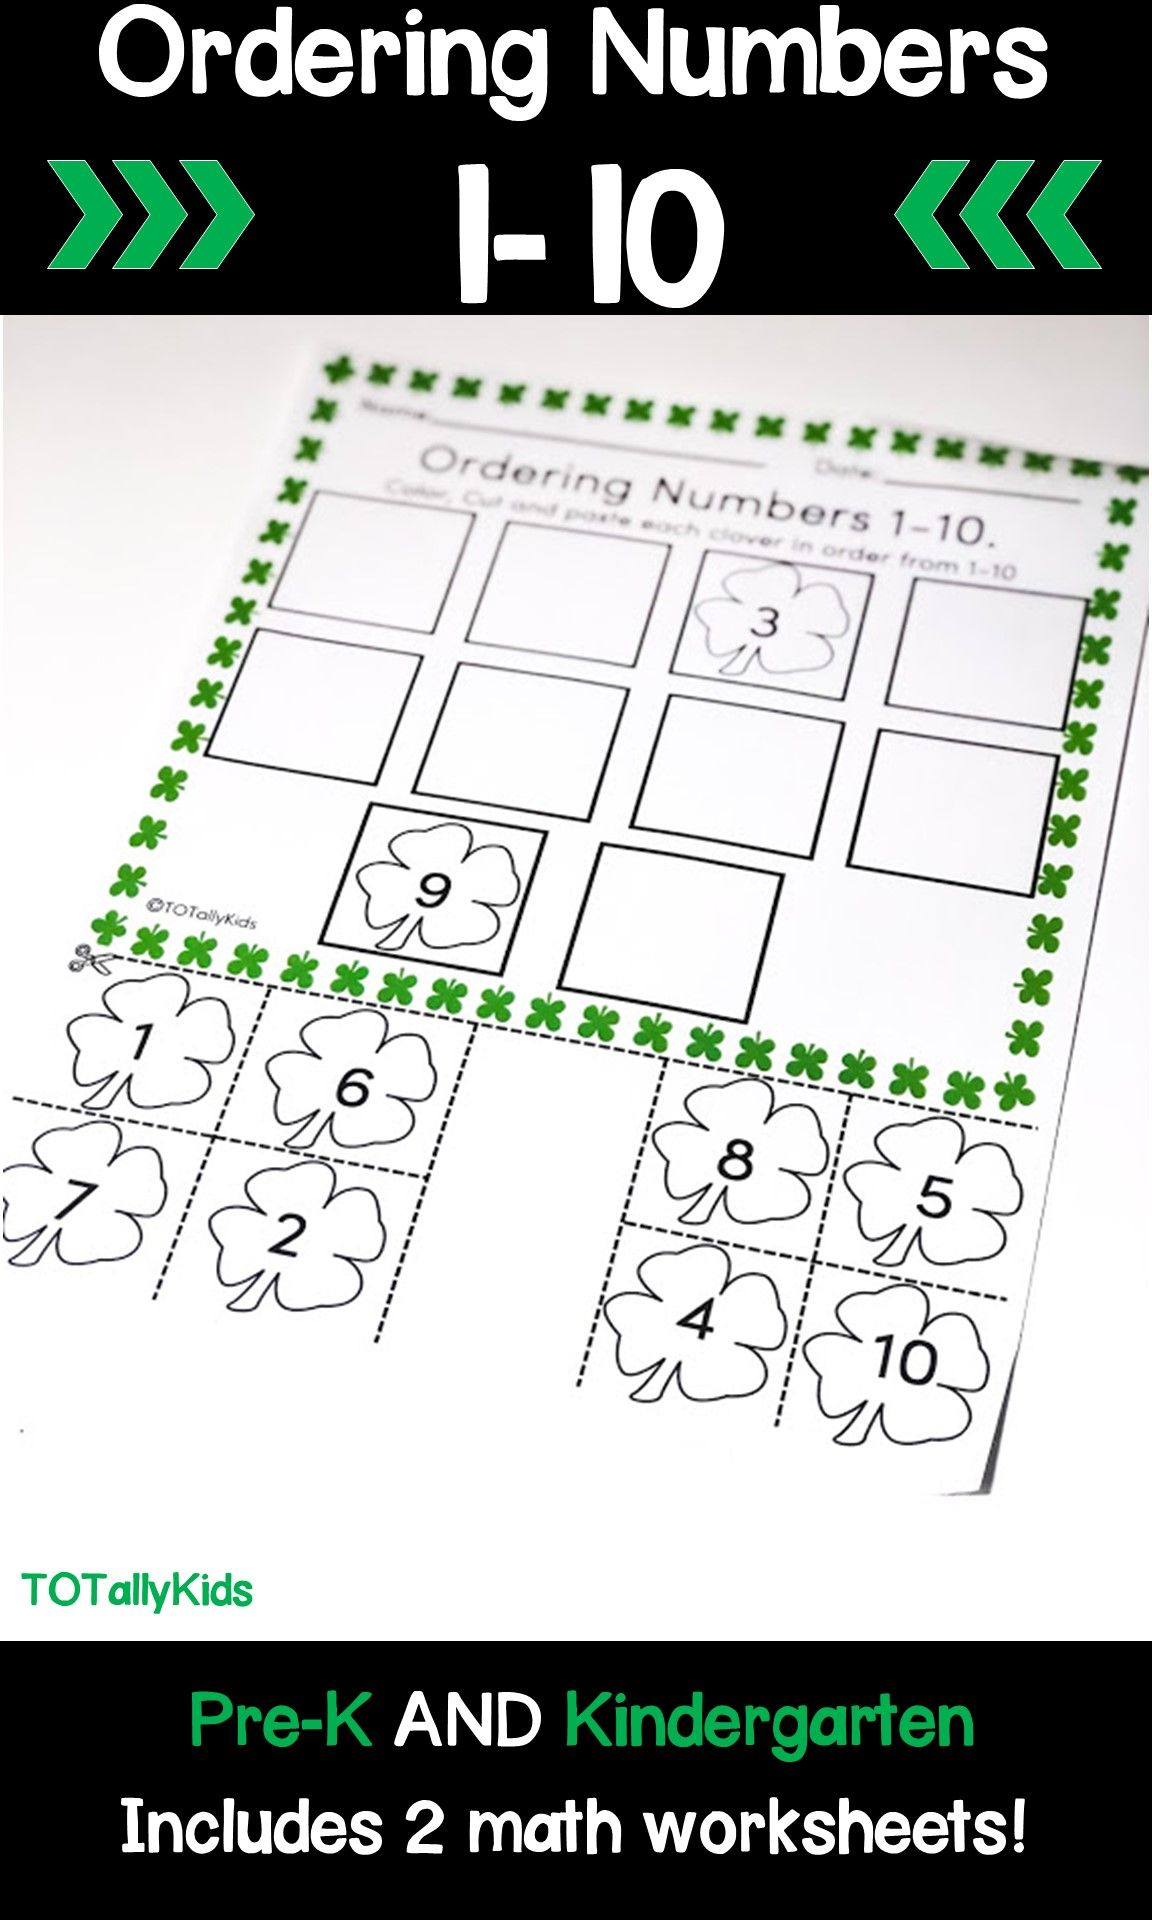 Ordering Numbers 1 10 St Patrick S Day Activity